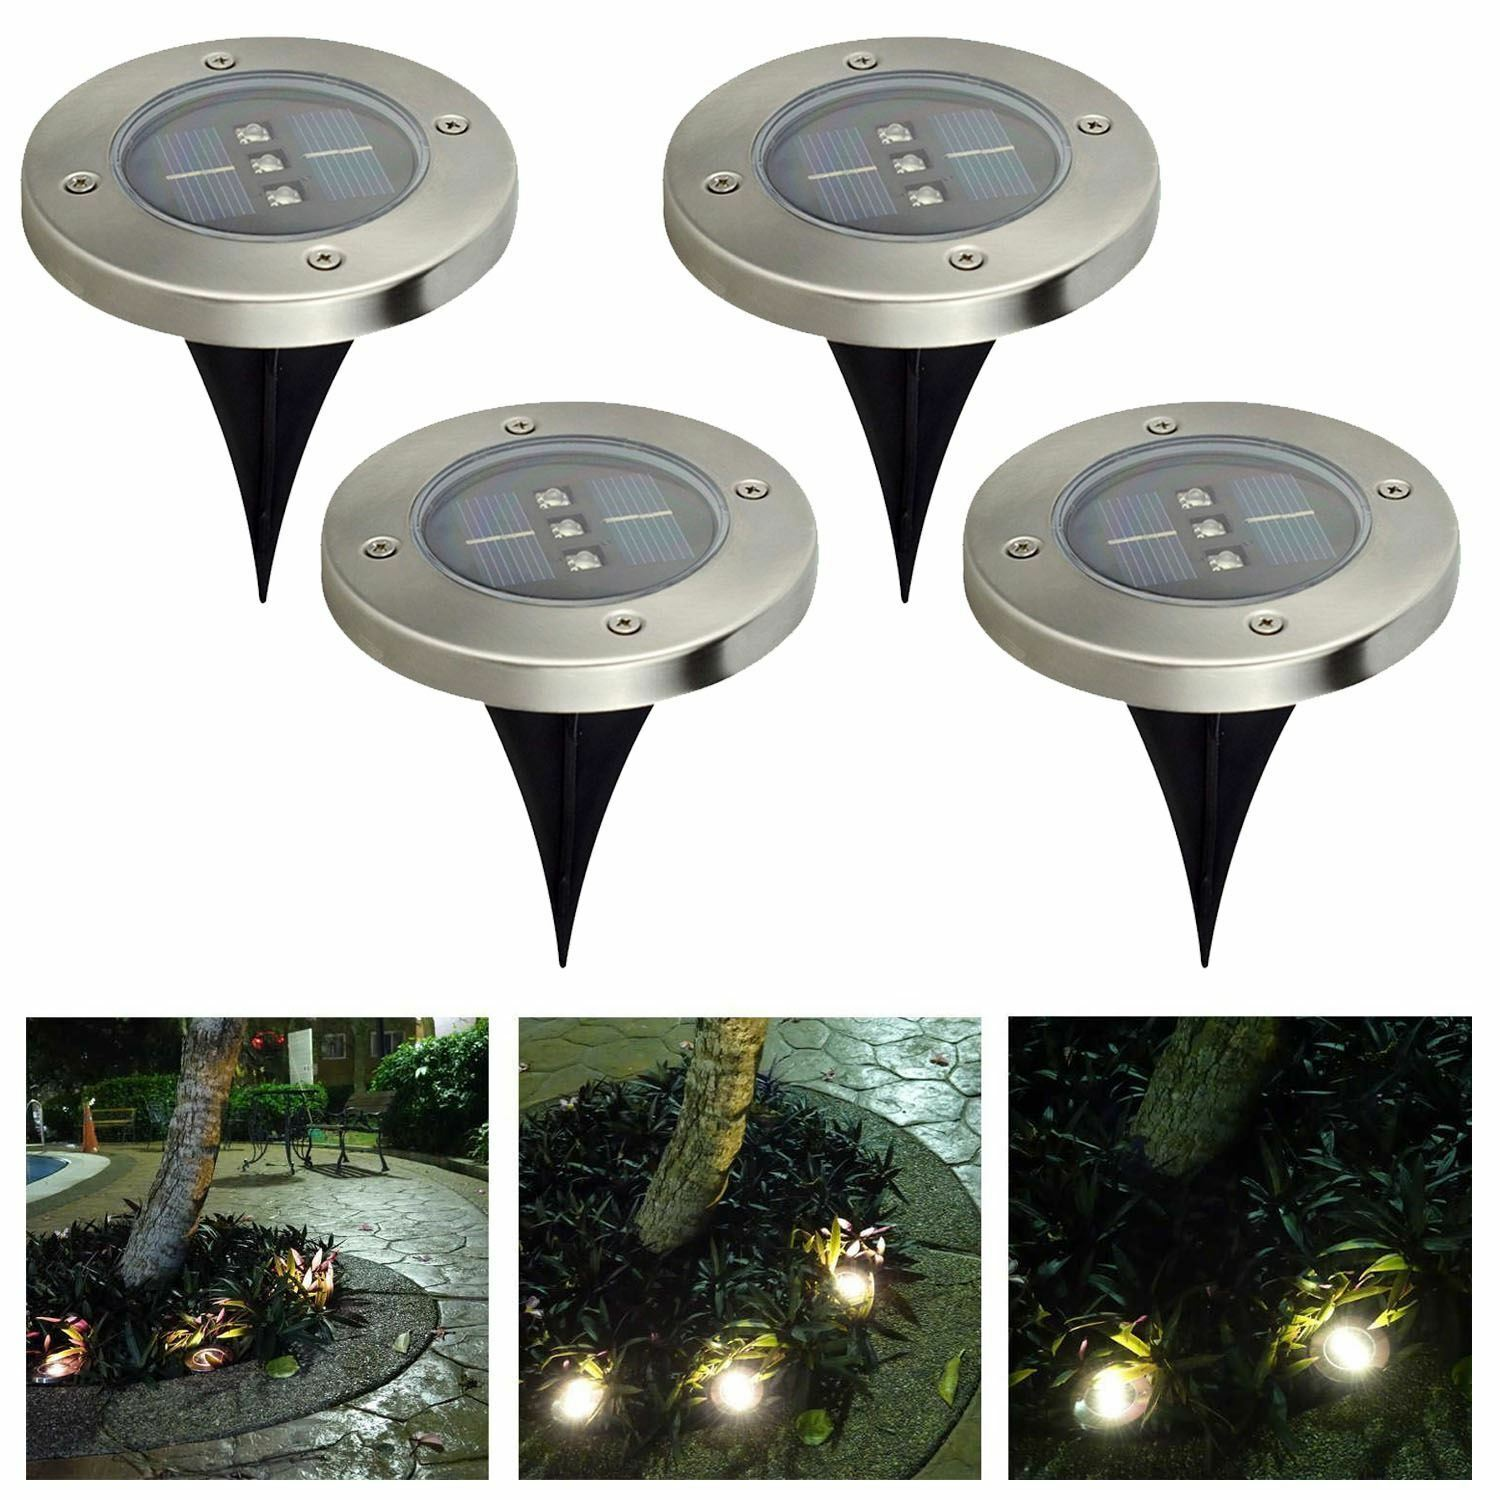 4 x 3 led solar ground light floor decking patio led for Outdoor ground lighting